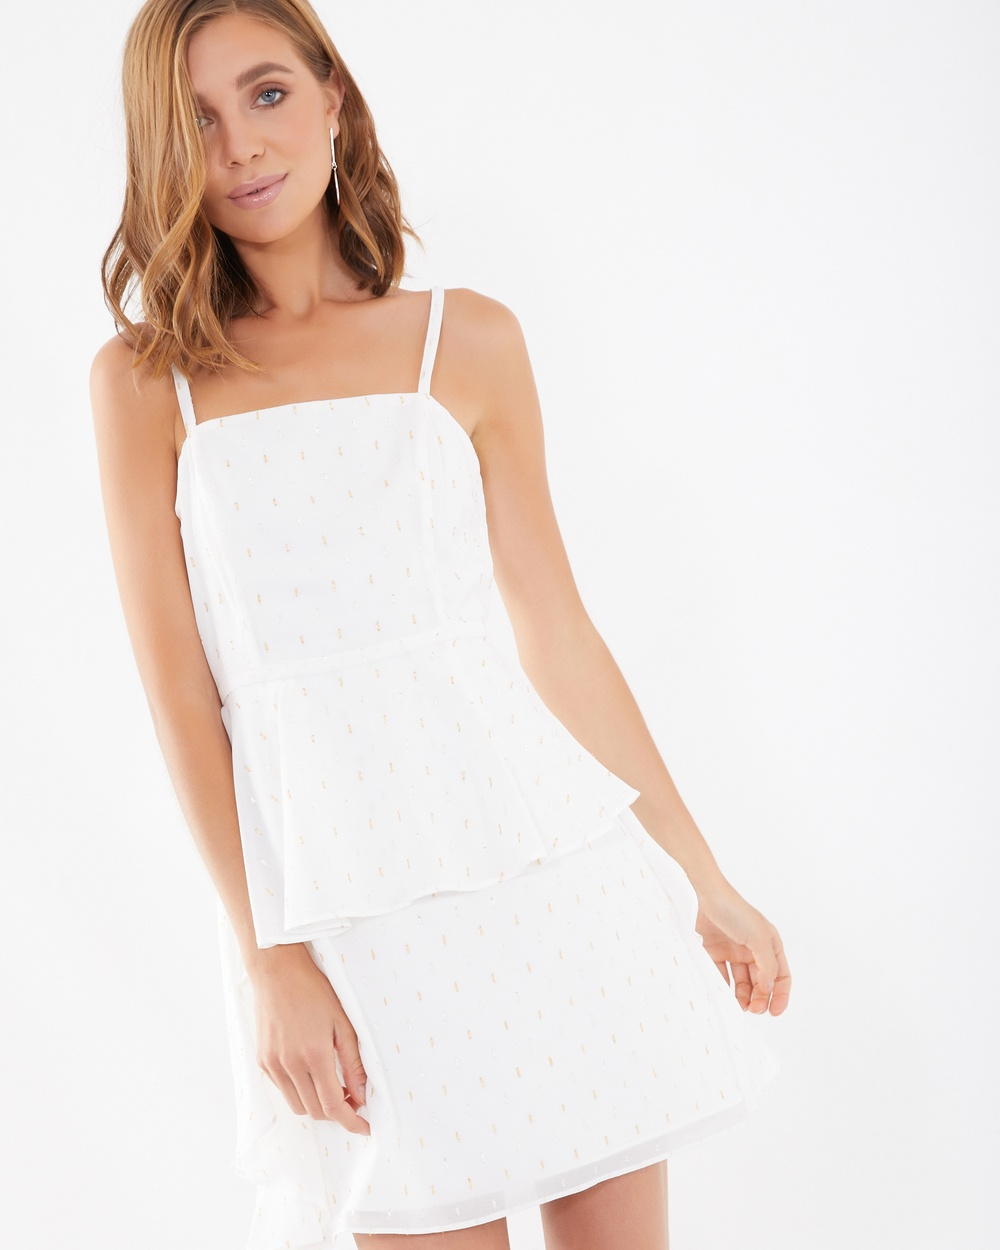 Calli Cindy Drape Front Dress Printed Dresses White Cindy Drape Front Dress